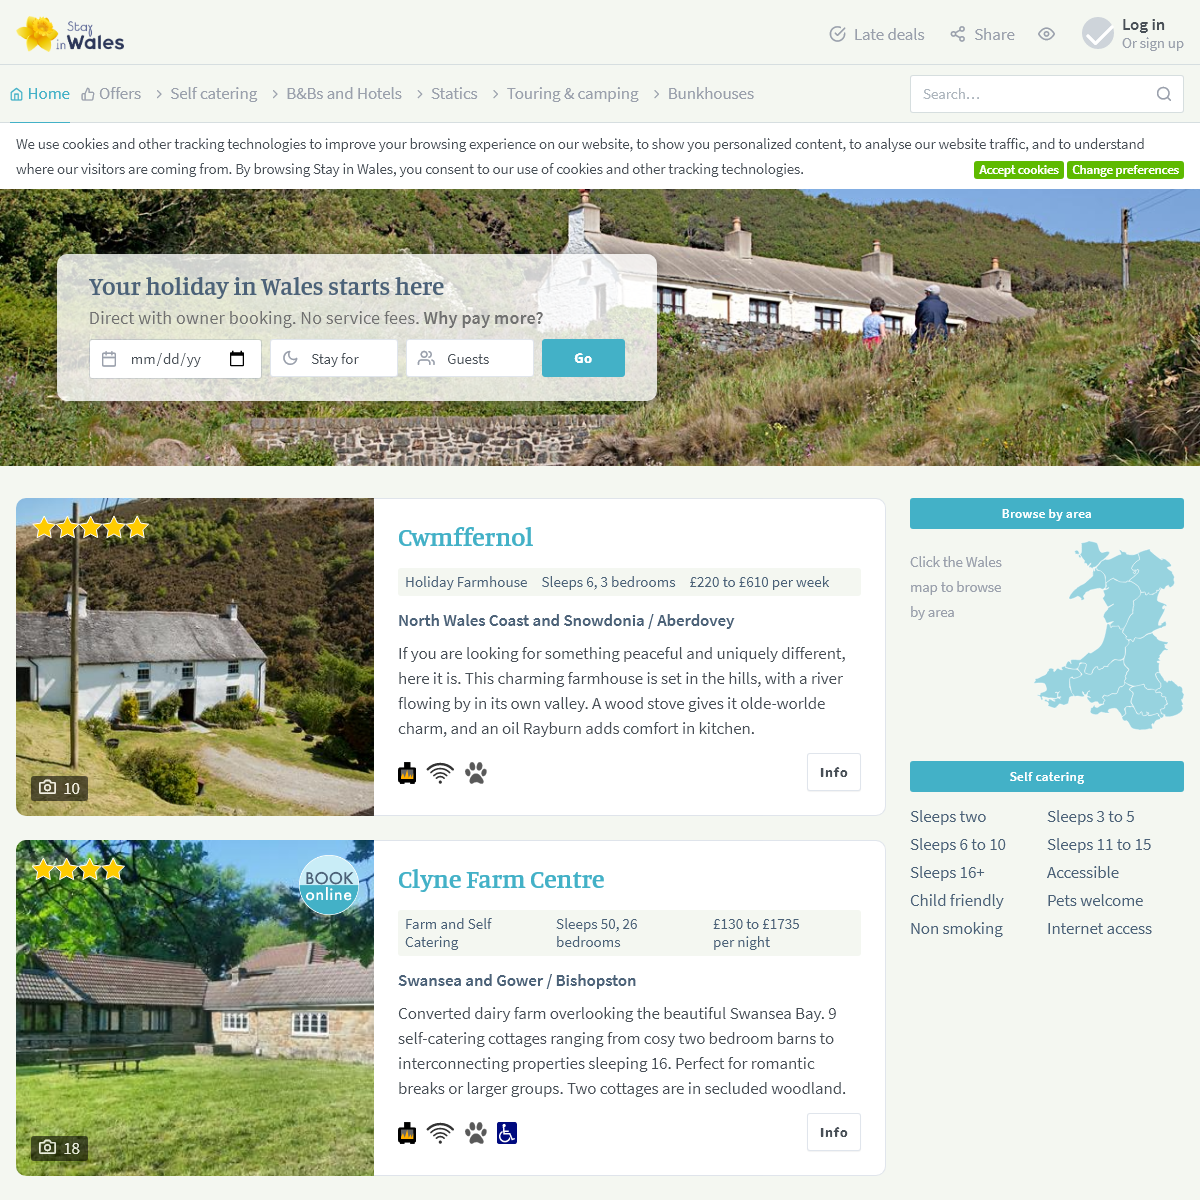 Wales Holiday Accommodation - Cottages, Hotels, Bed and Breakfast